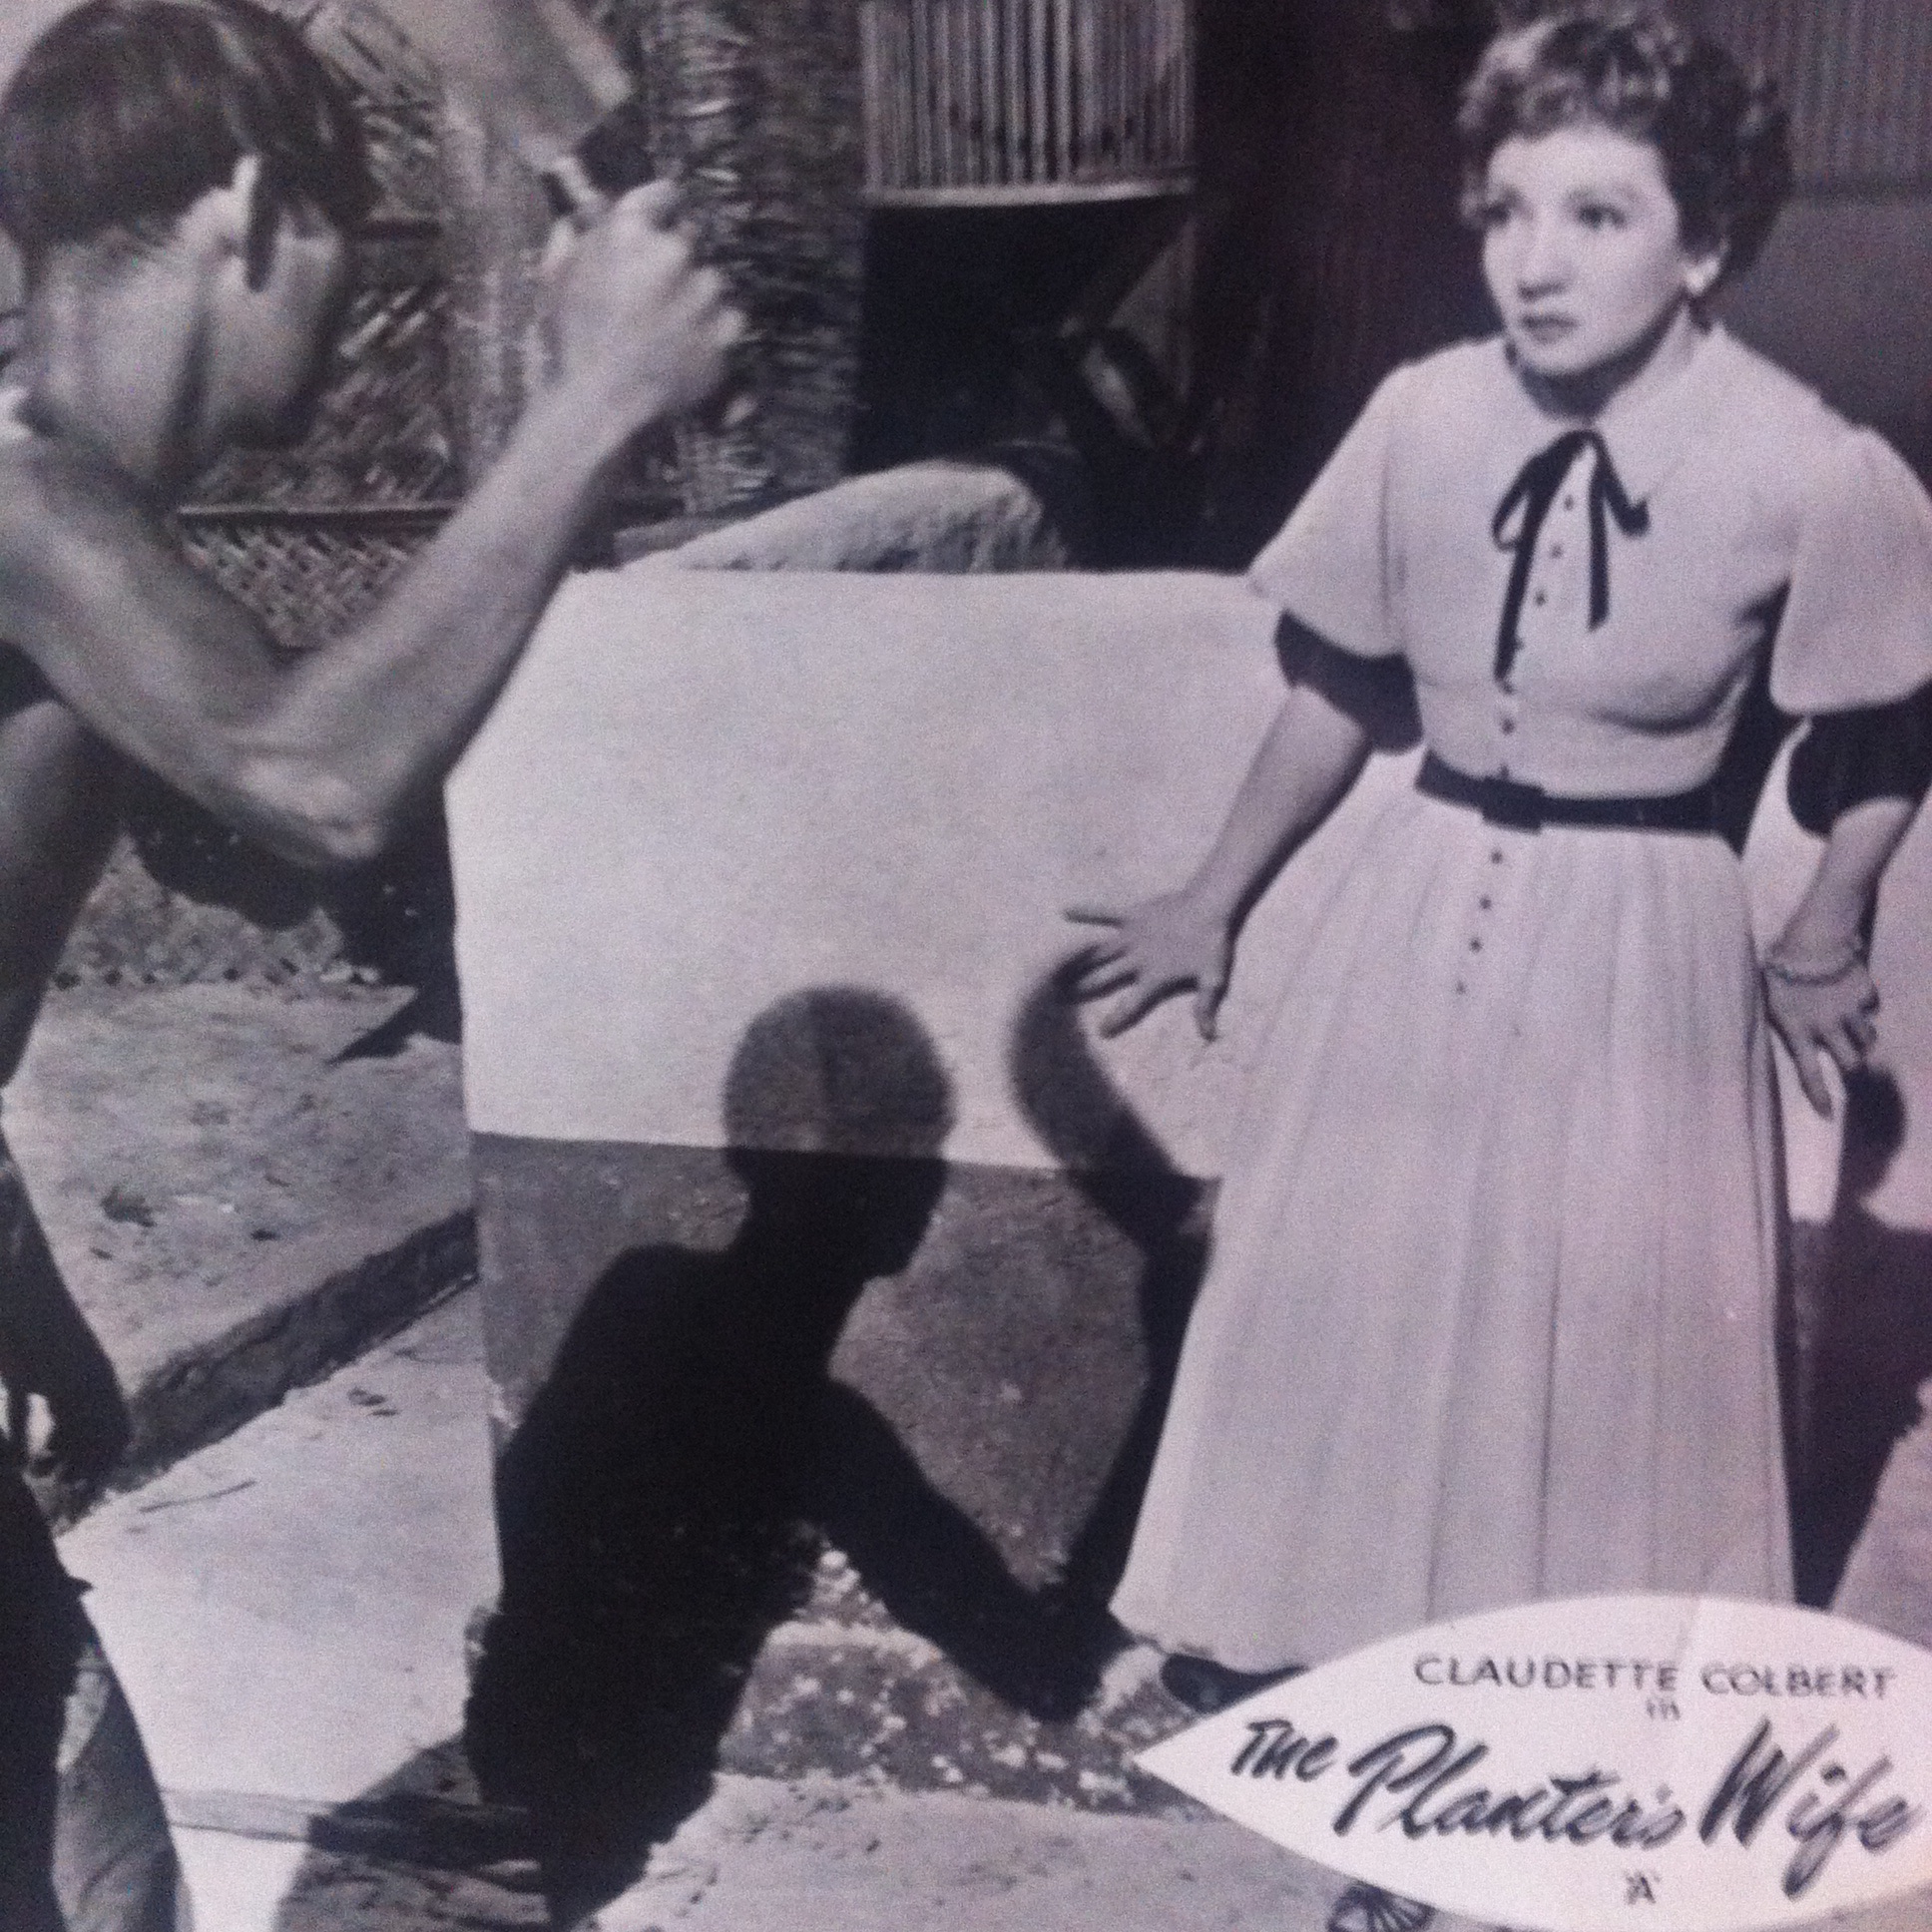 Claudette Colbert in The Planter's Wife (1952)